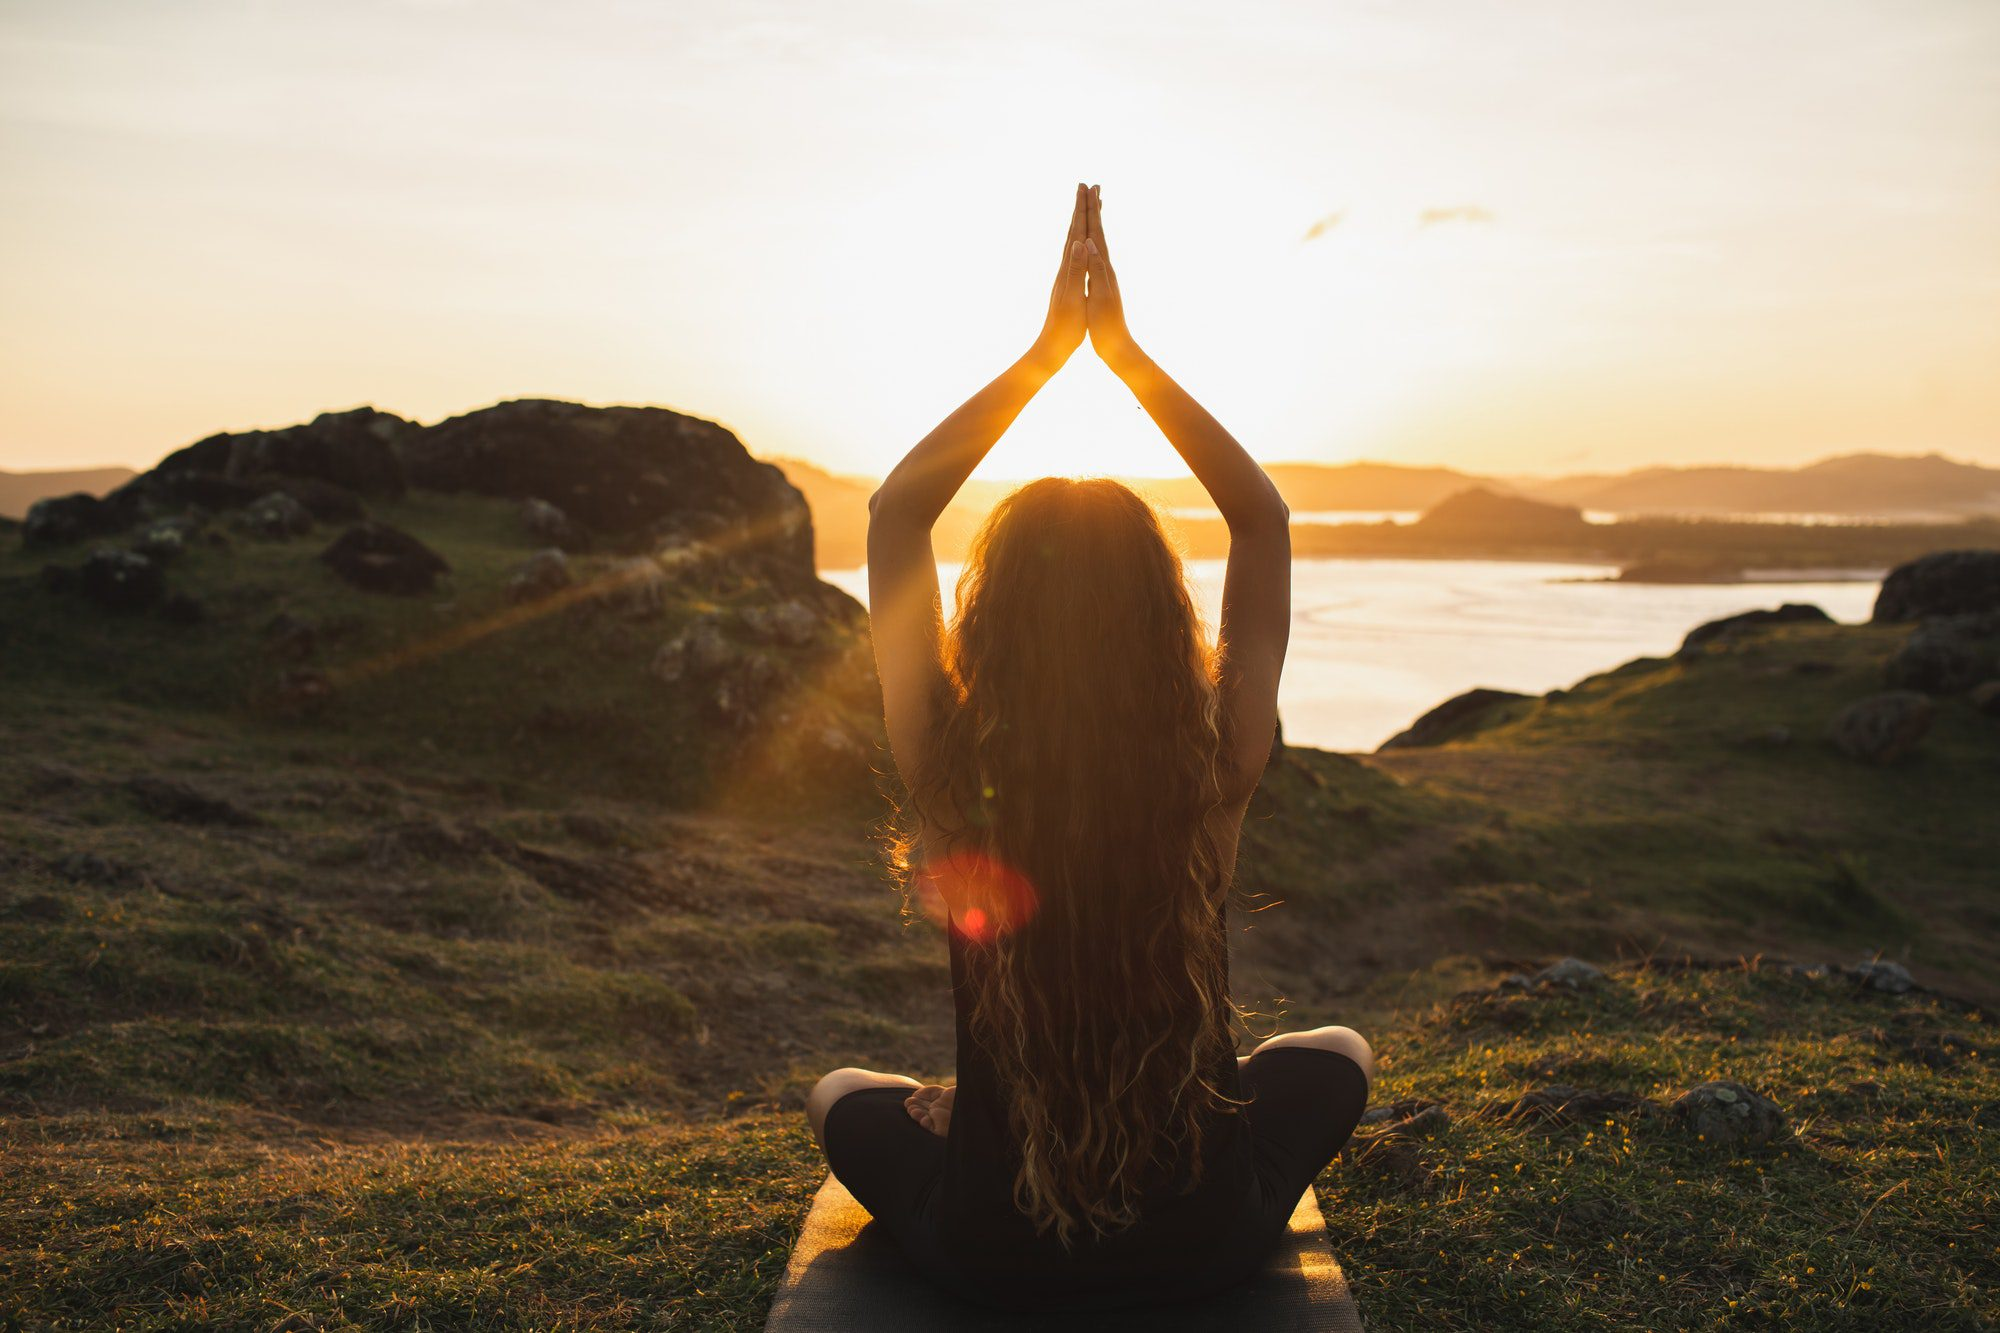 Young woman practicing yoga outdoors. Spiritual harmony, introspection and wellbeing concept